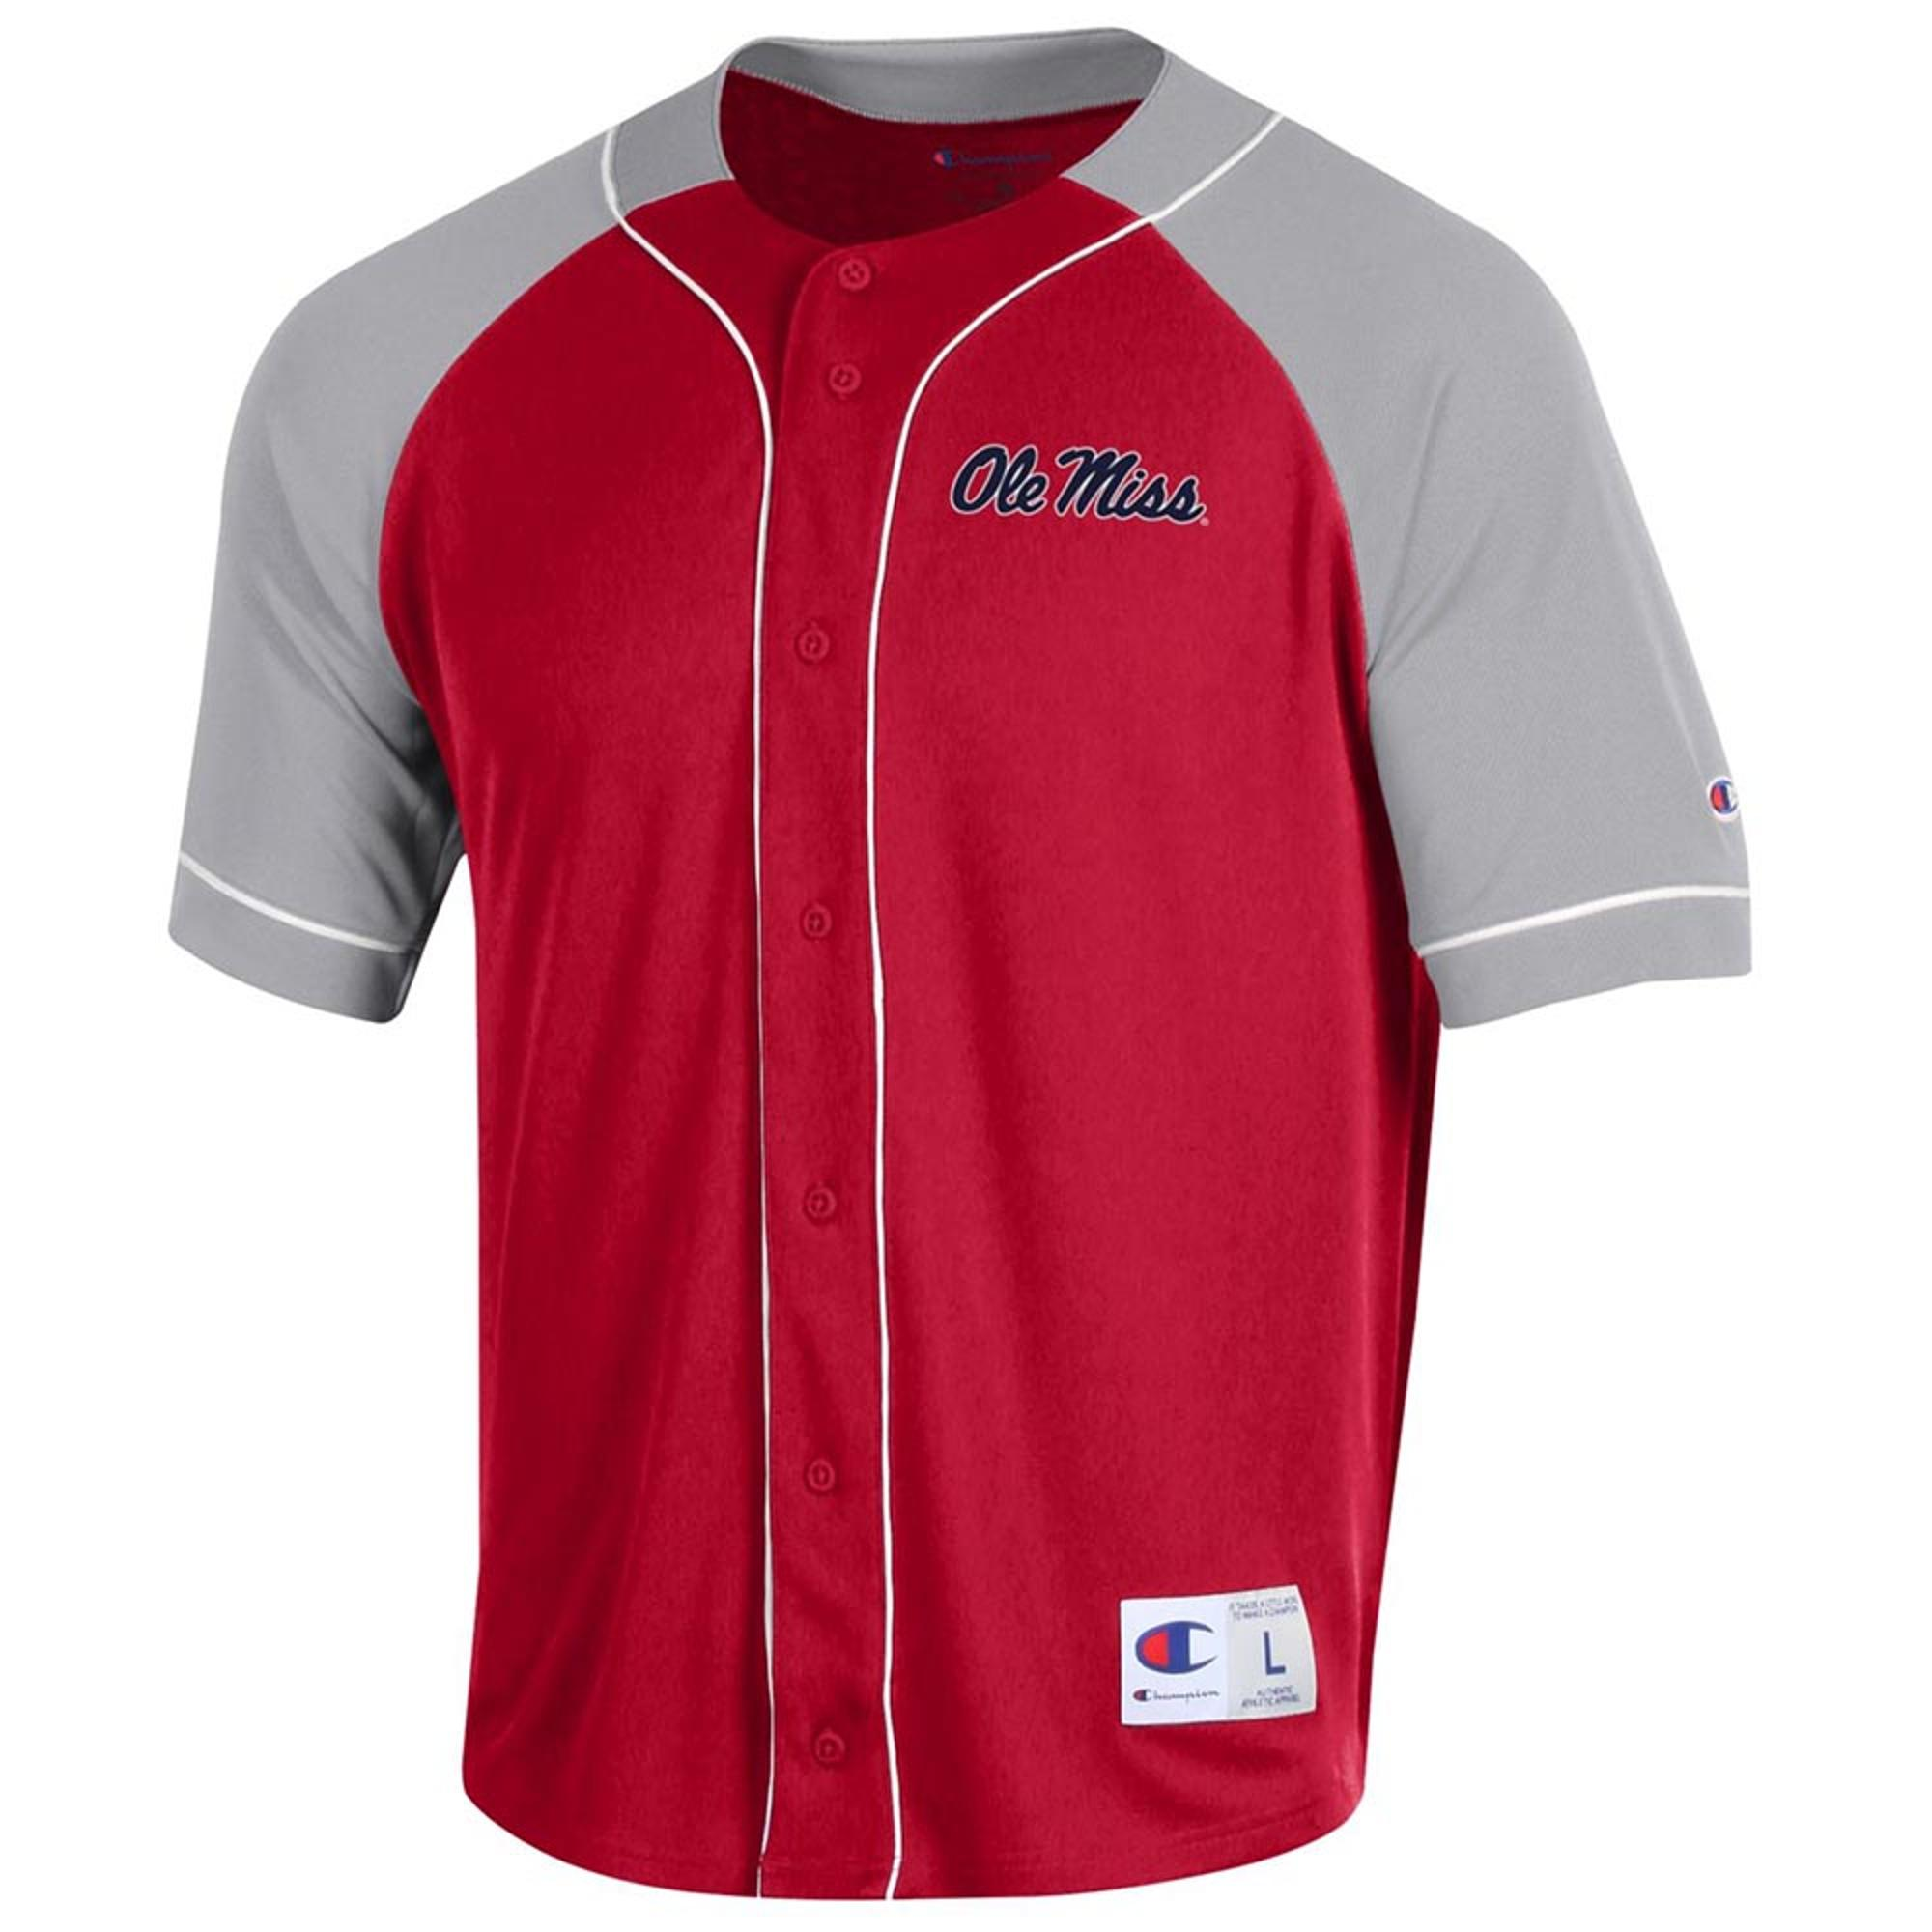 SMU OLE MISS BAEBALL JERSEY SHIRT